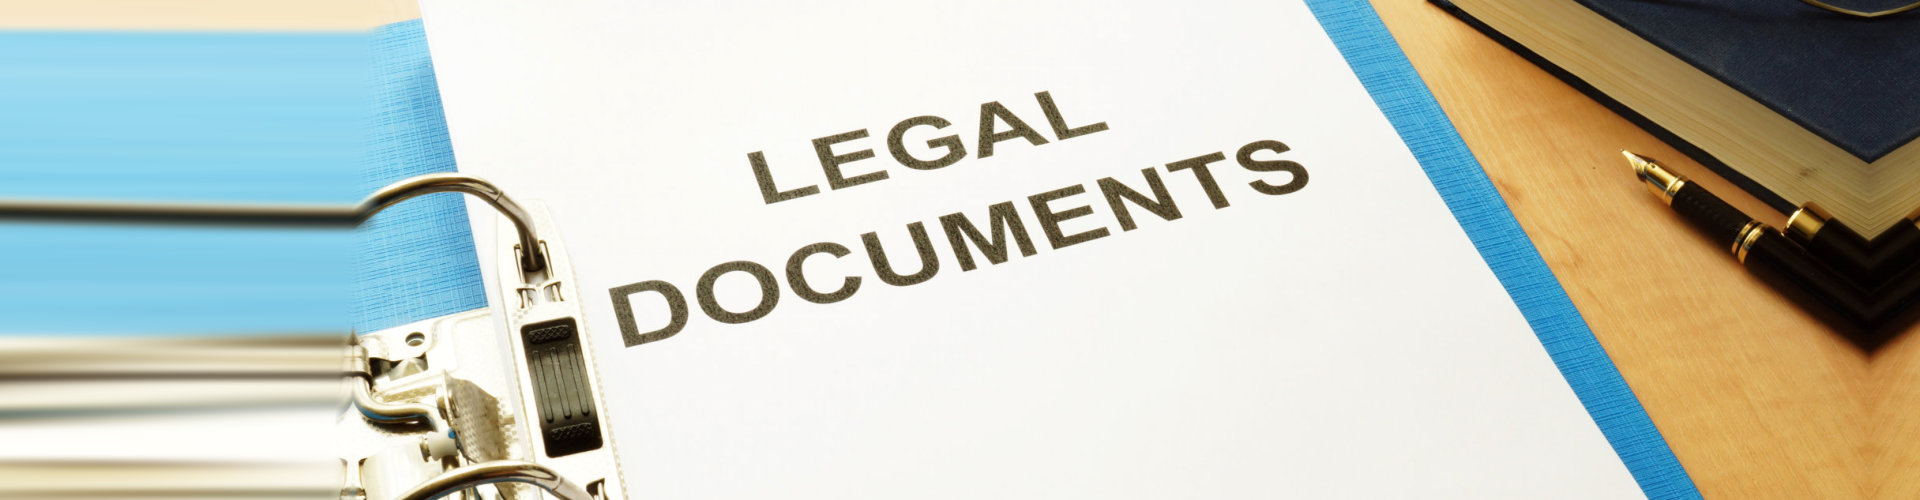 legal documents image